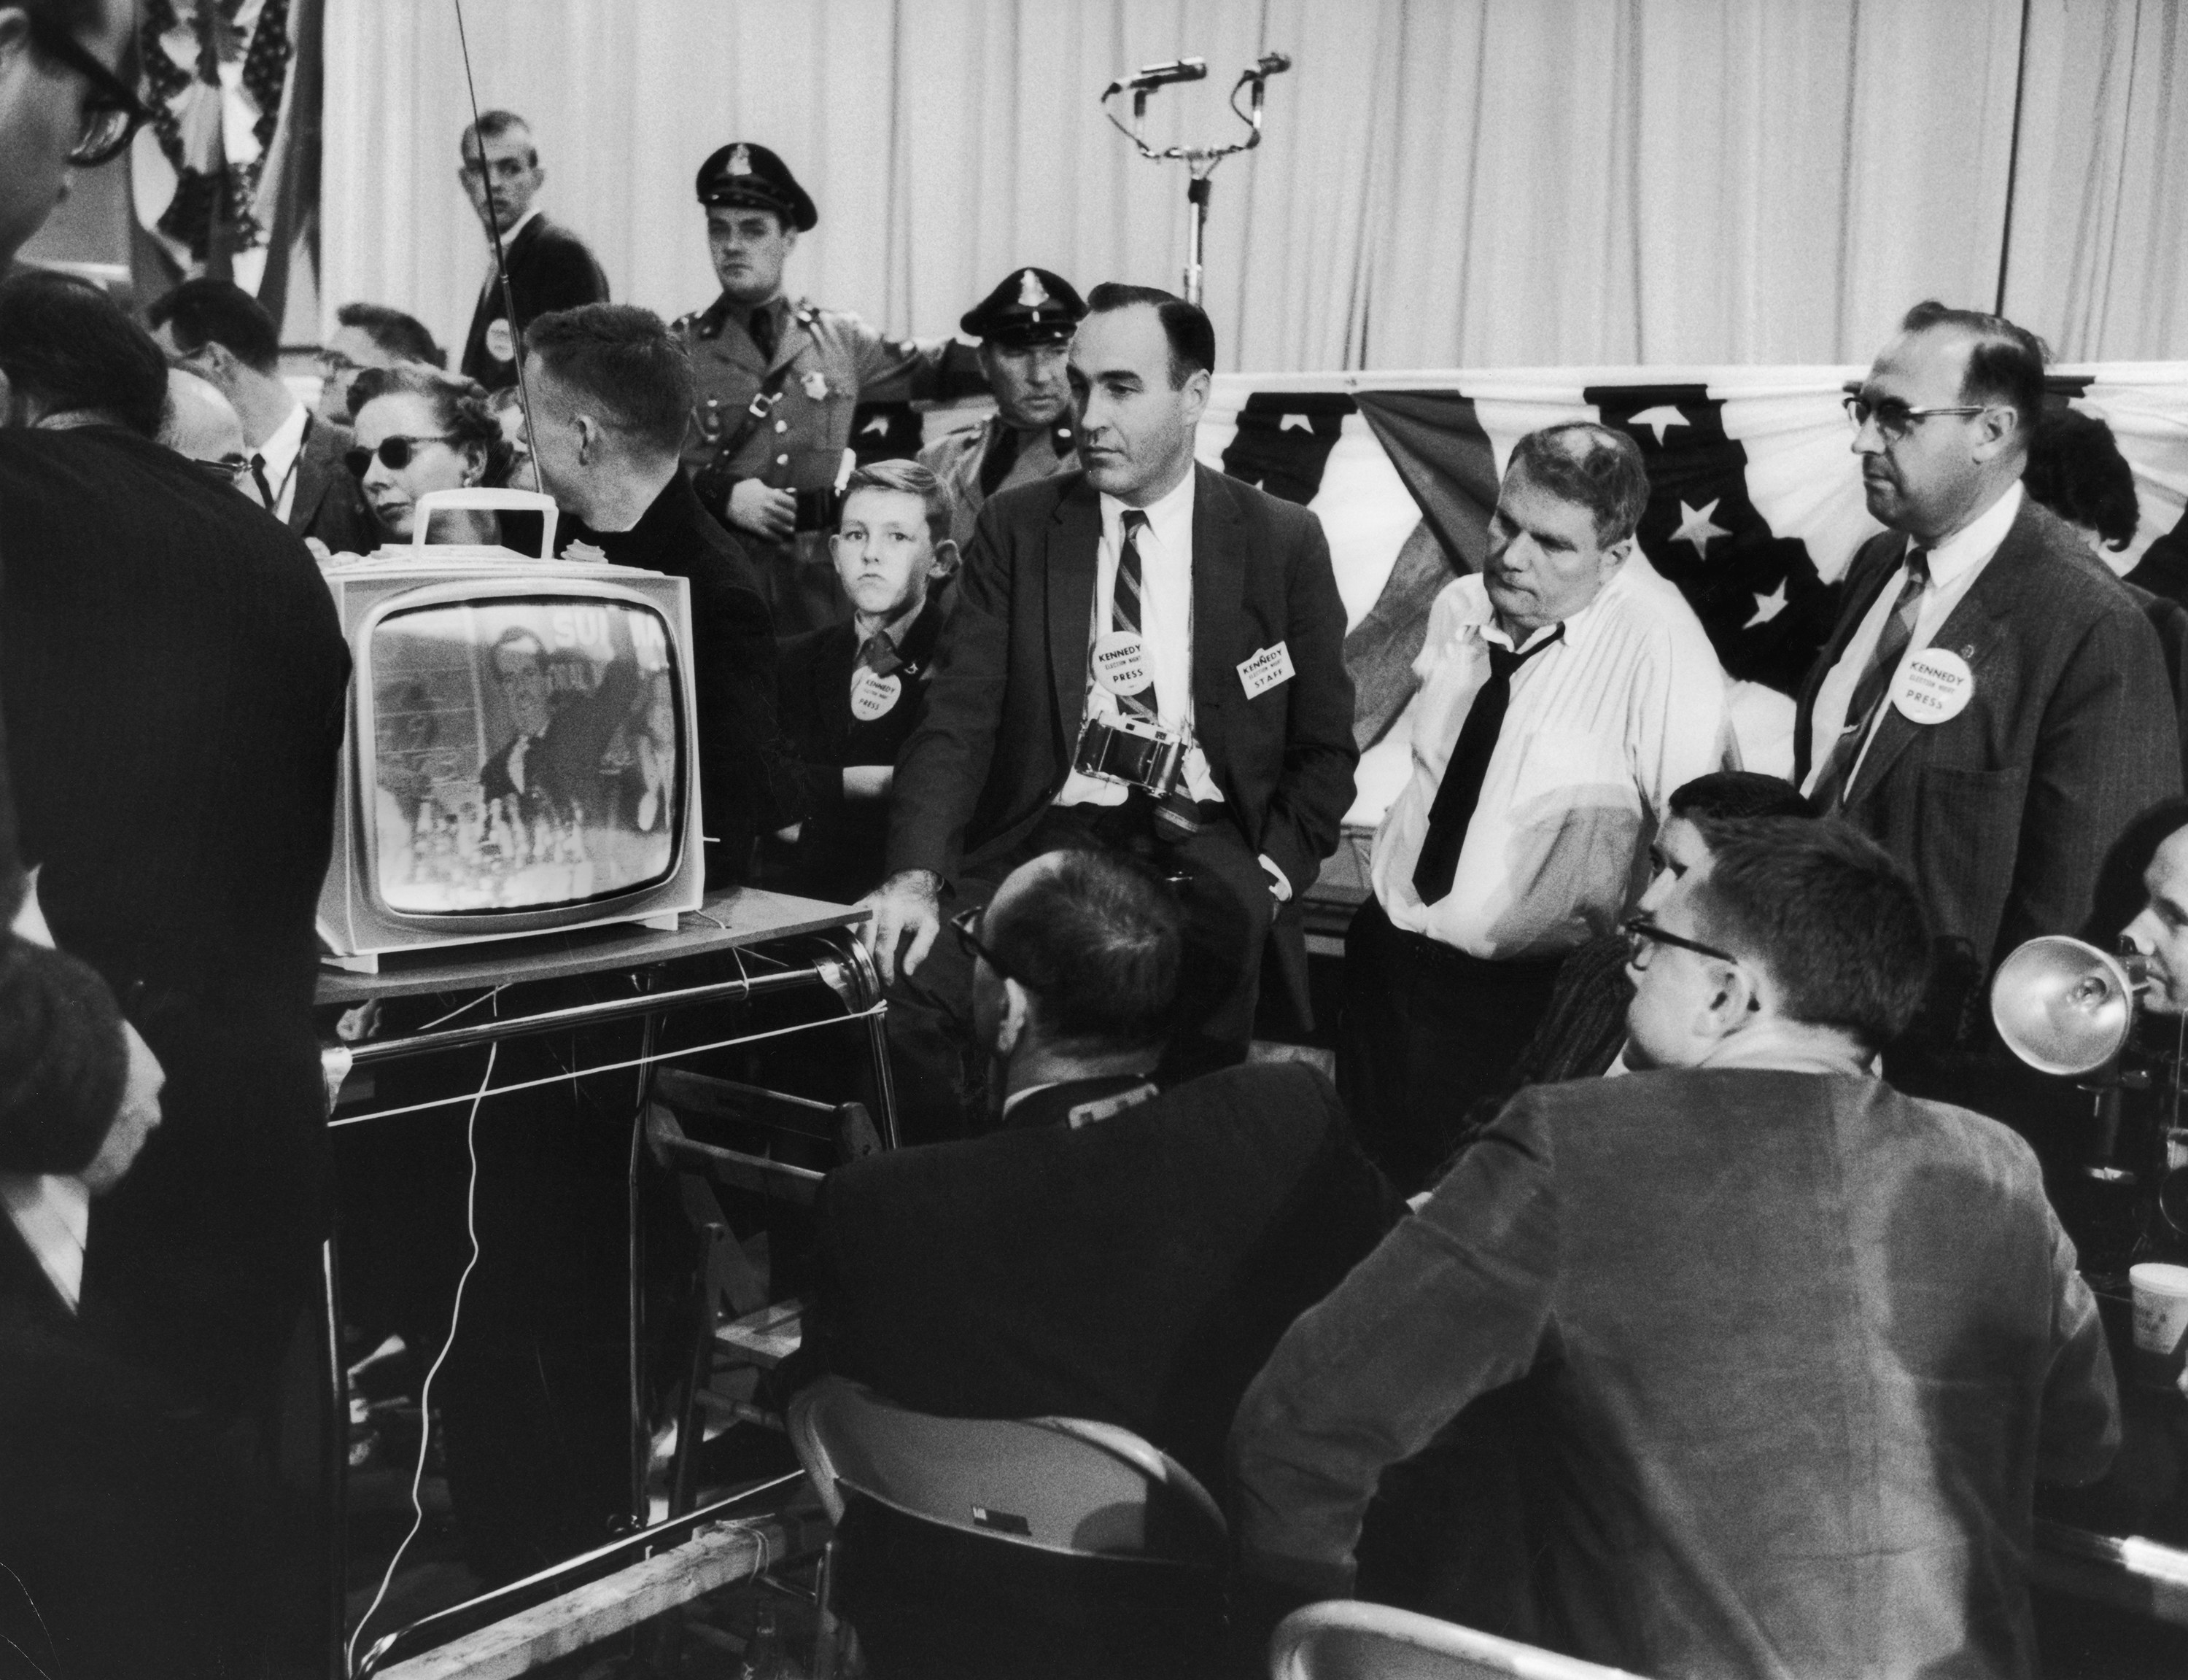 Men in black-and-white photo crowded around a TV